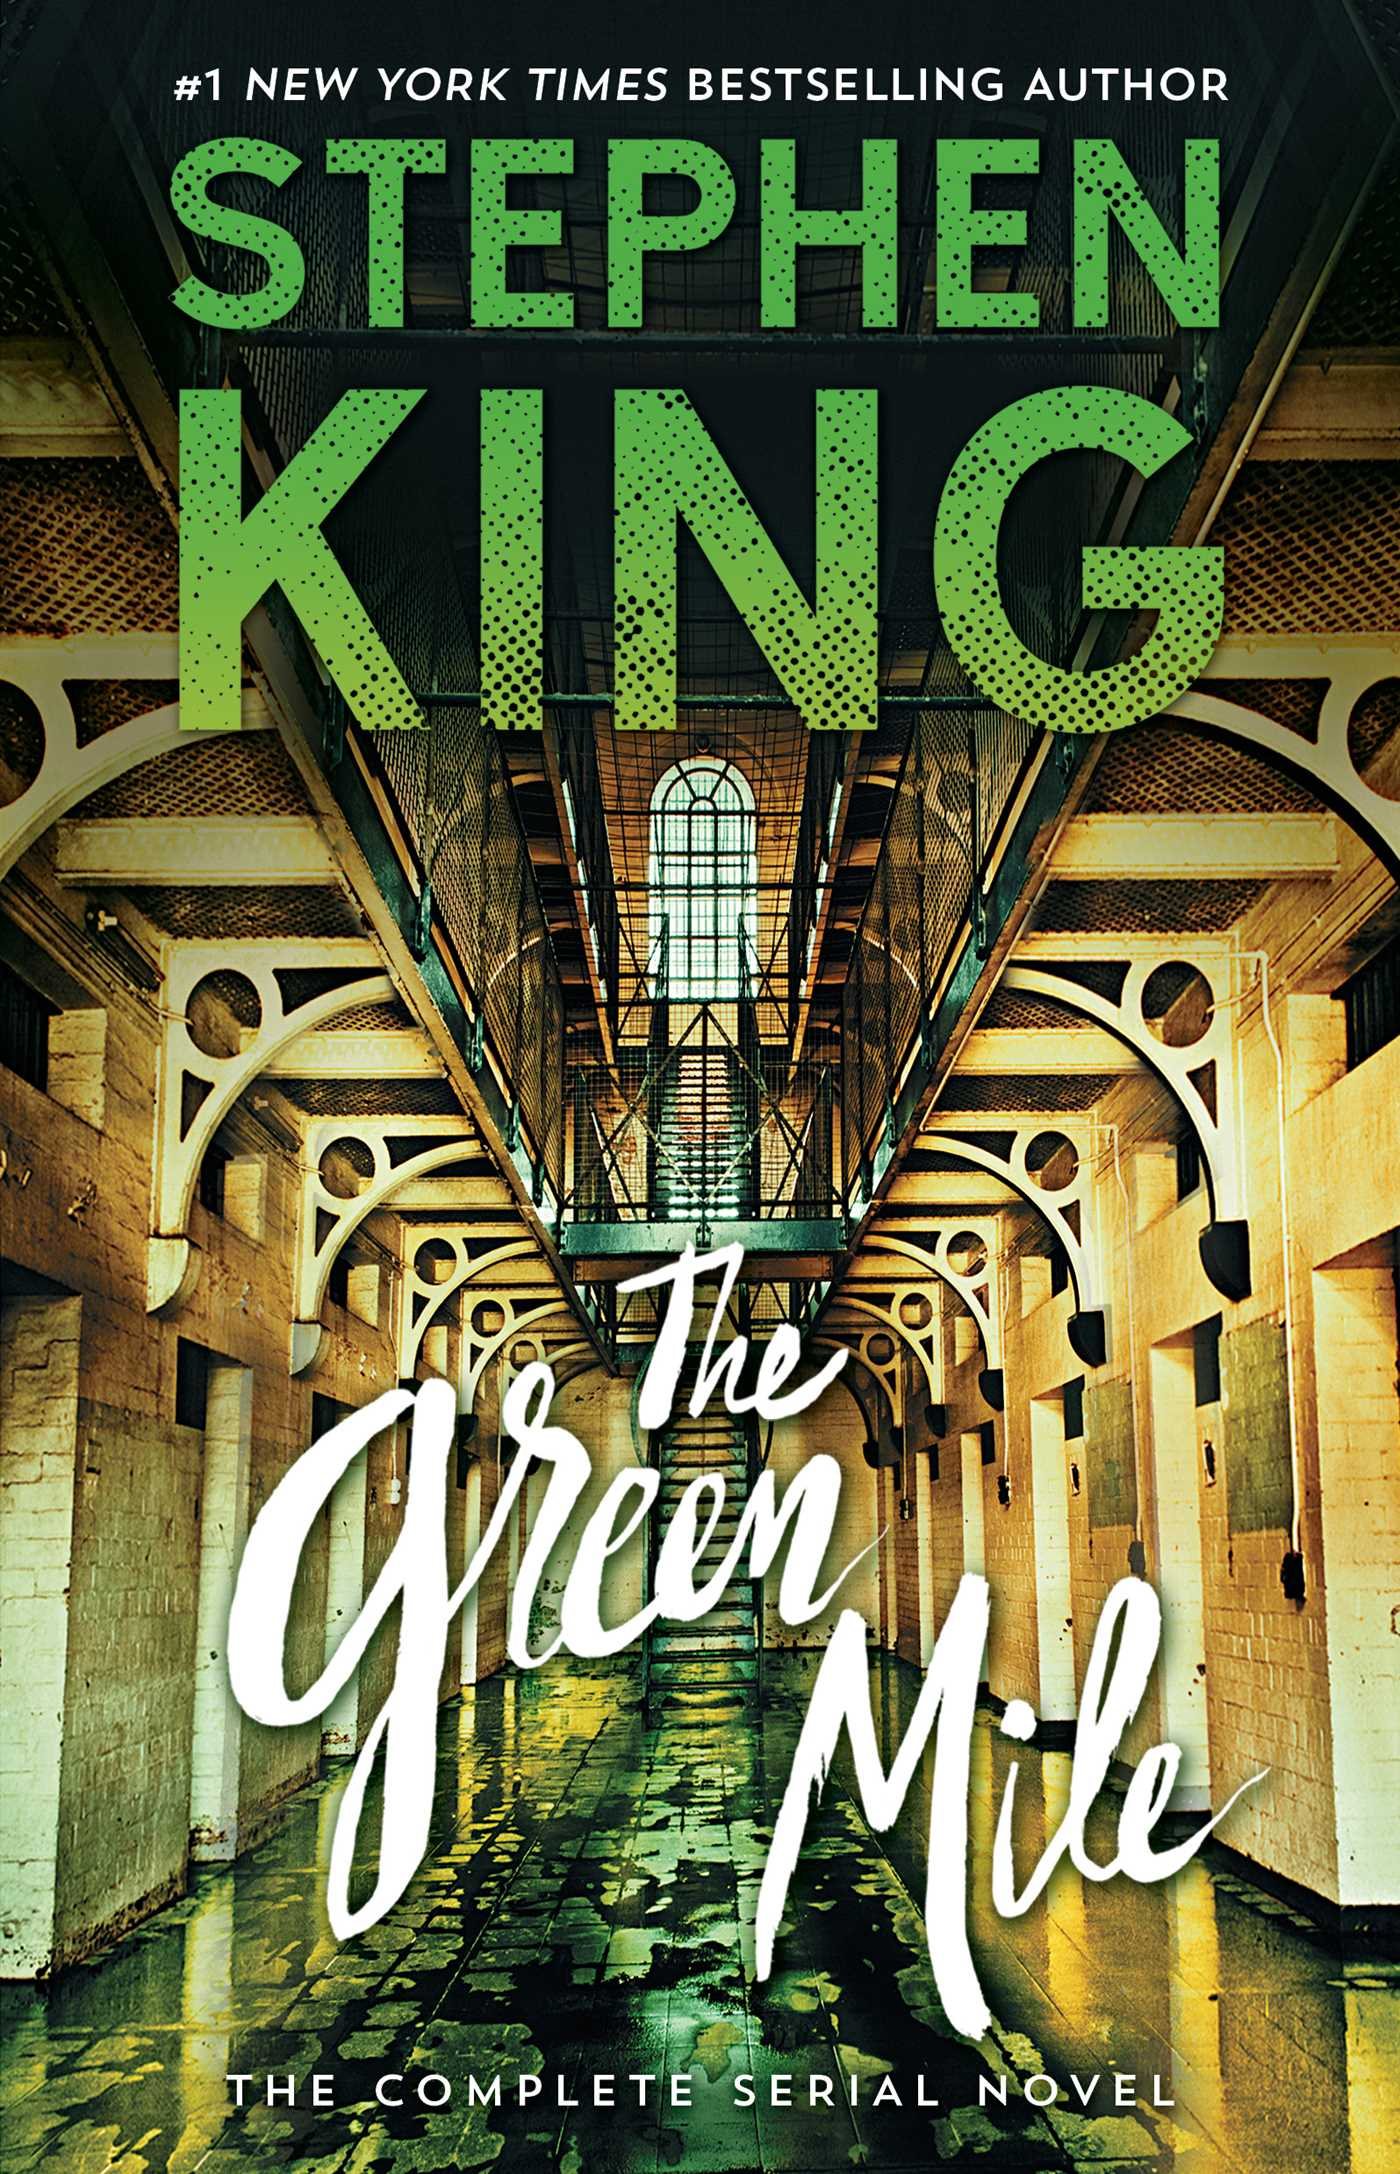 chair cover king york on how to lift a with one hand the green mile | book by stephen official publisher page simon & schuster